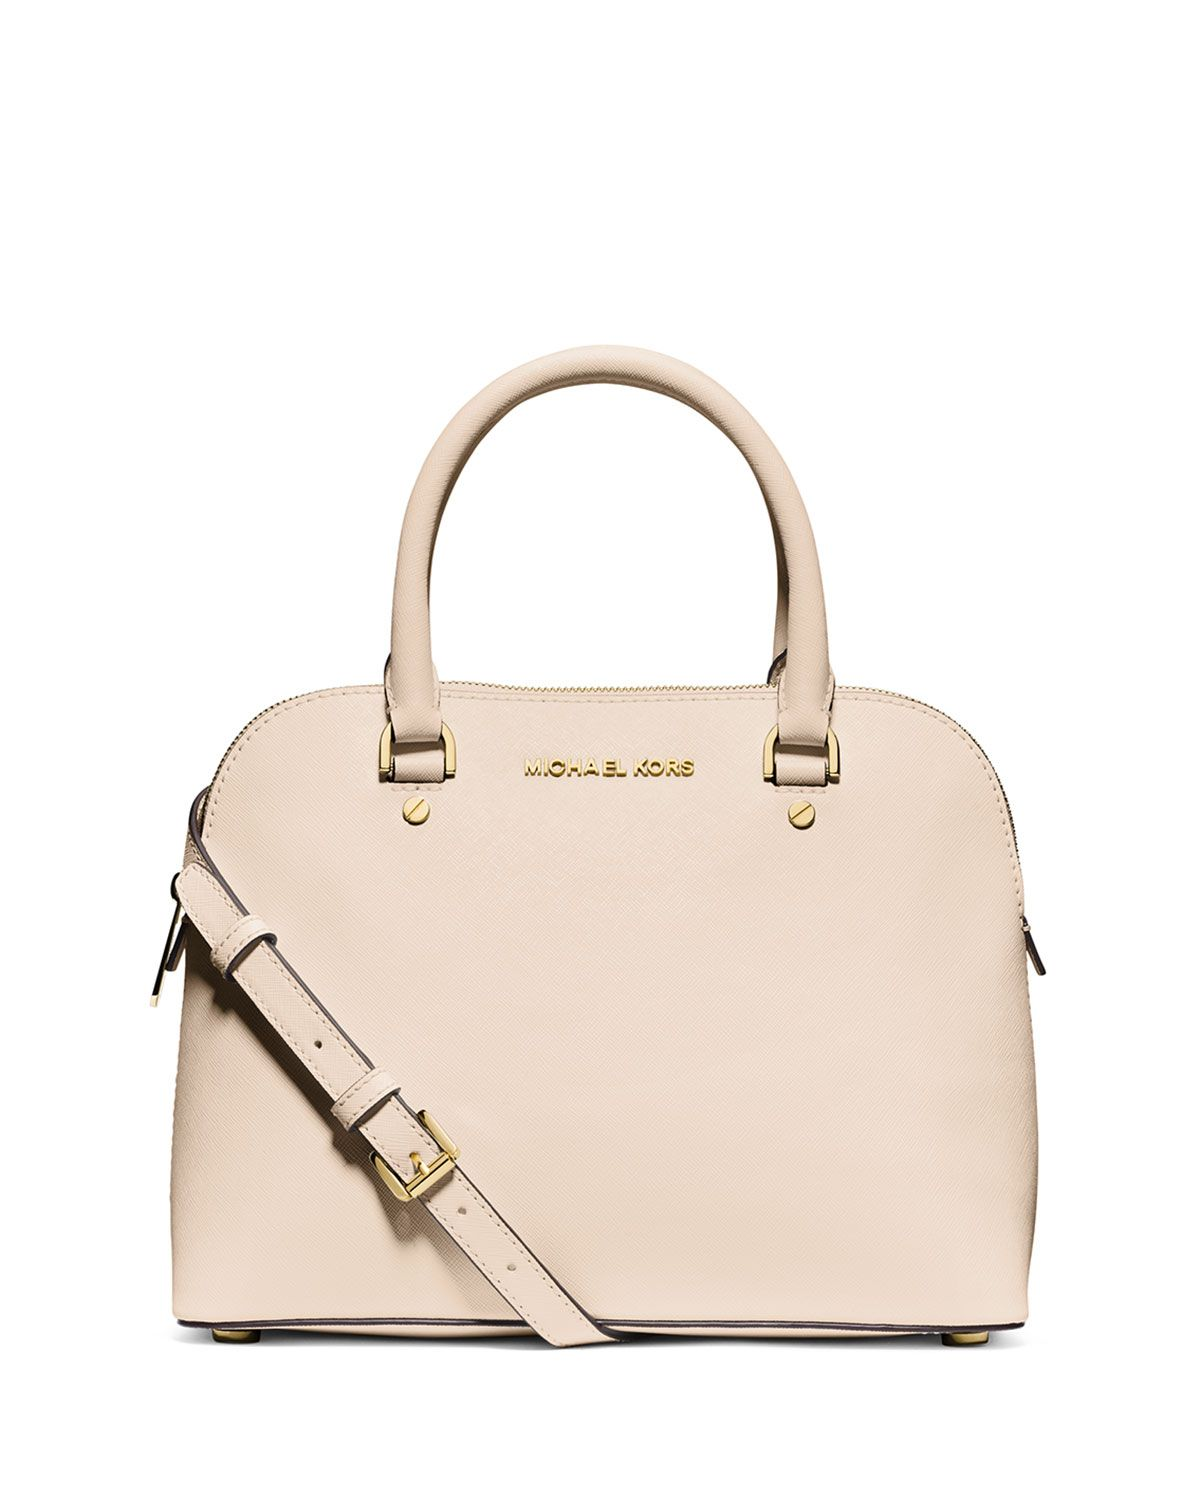 25d9fa0a8af6 usa new michael kors emmy small dome satchel pale gold glitter leather bag  crossbody fbc62 98190; get michael michael kors cindy medium dome satchel  bag ...